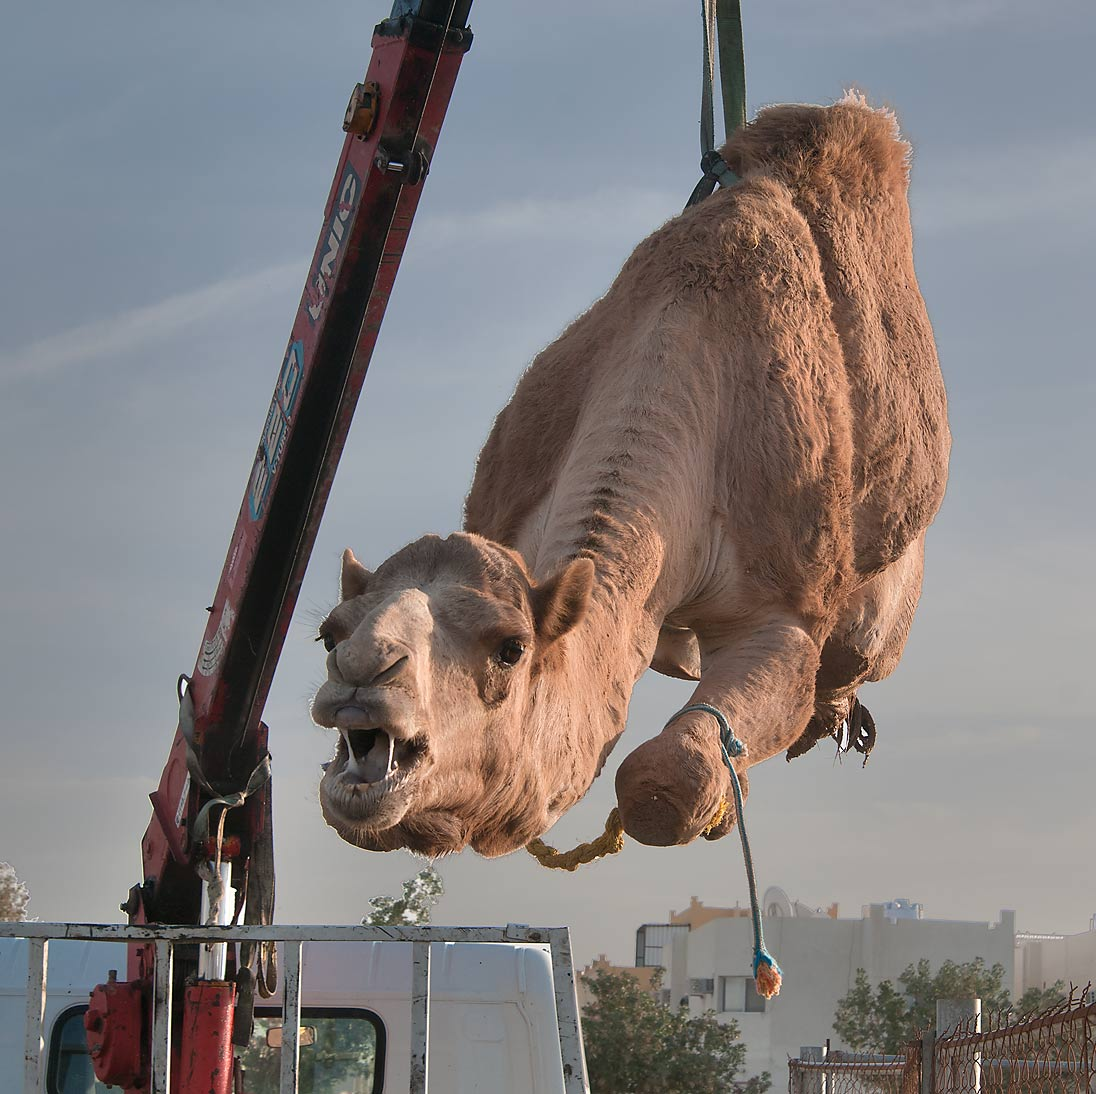 Lifting an animal by crane at Camel Market (Souq). Doha, Qatar